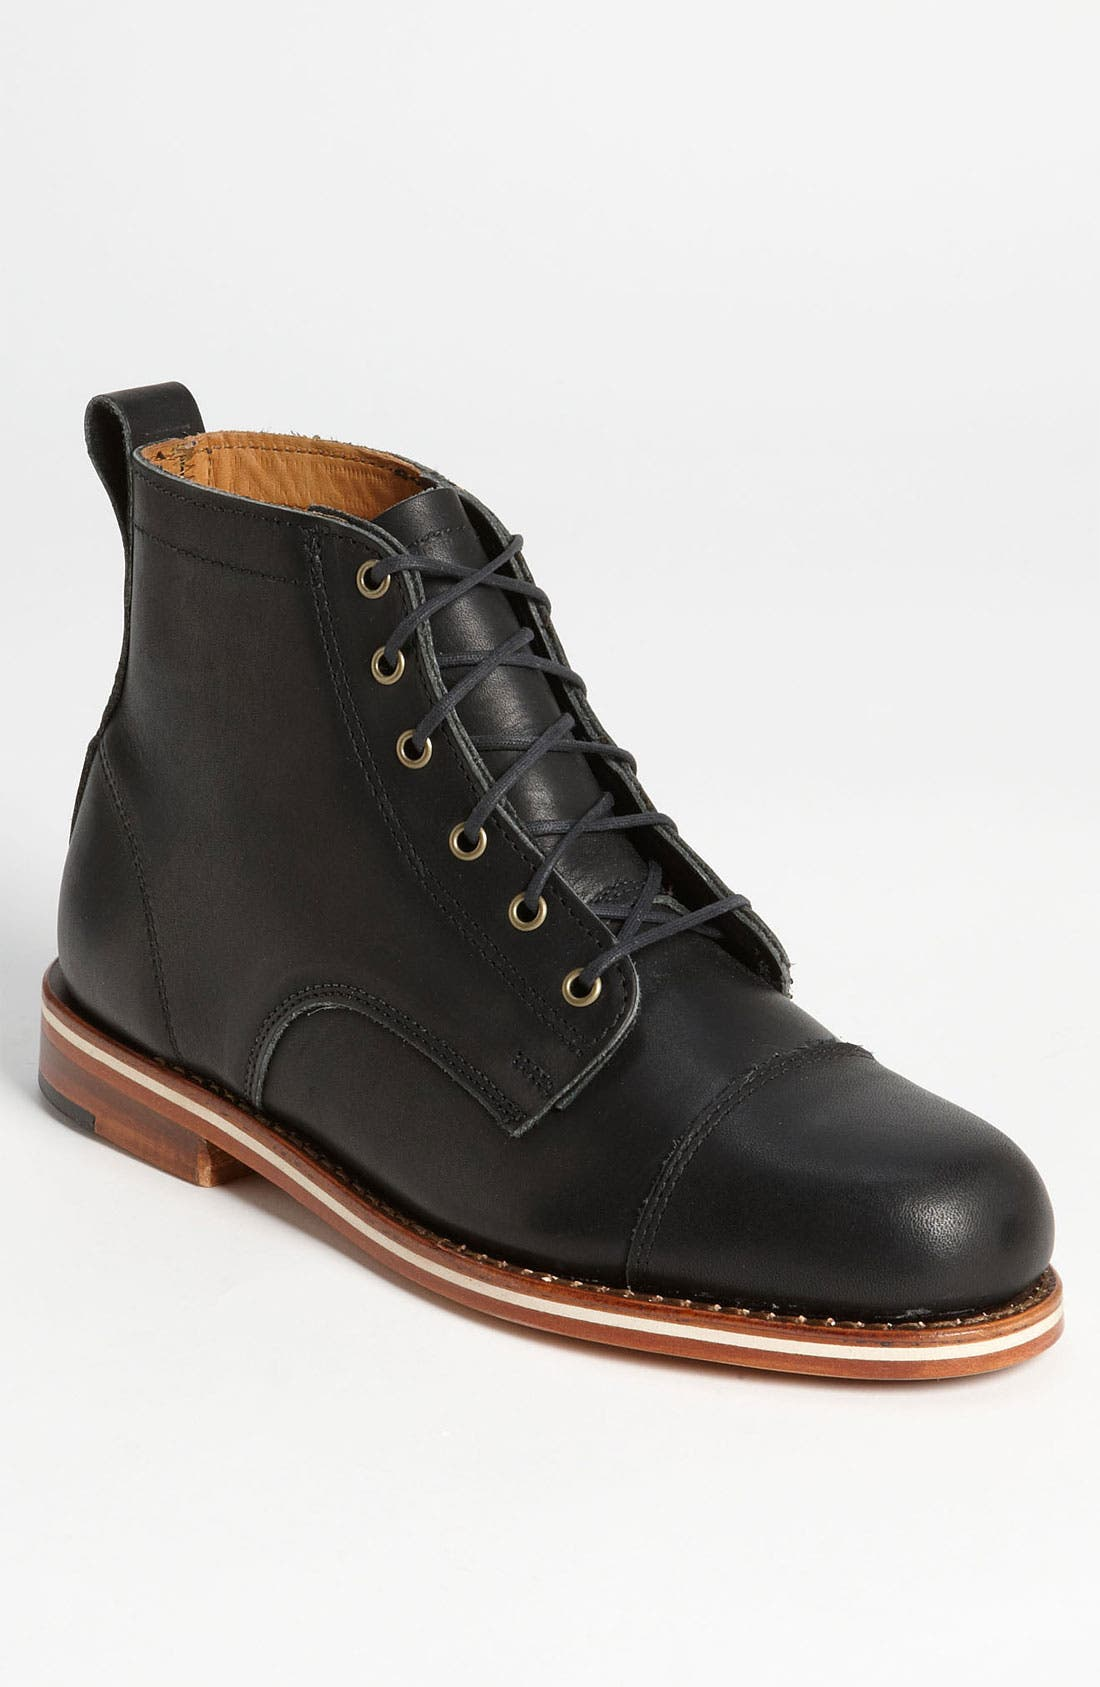 Alternate Image 1 Selected - HELM 'Muller' Cap Toe Boot (Online Only)